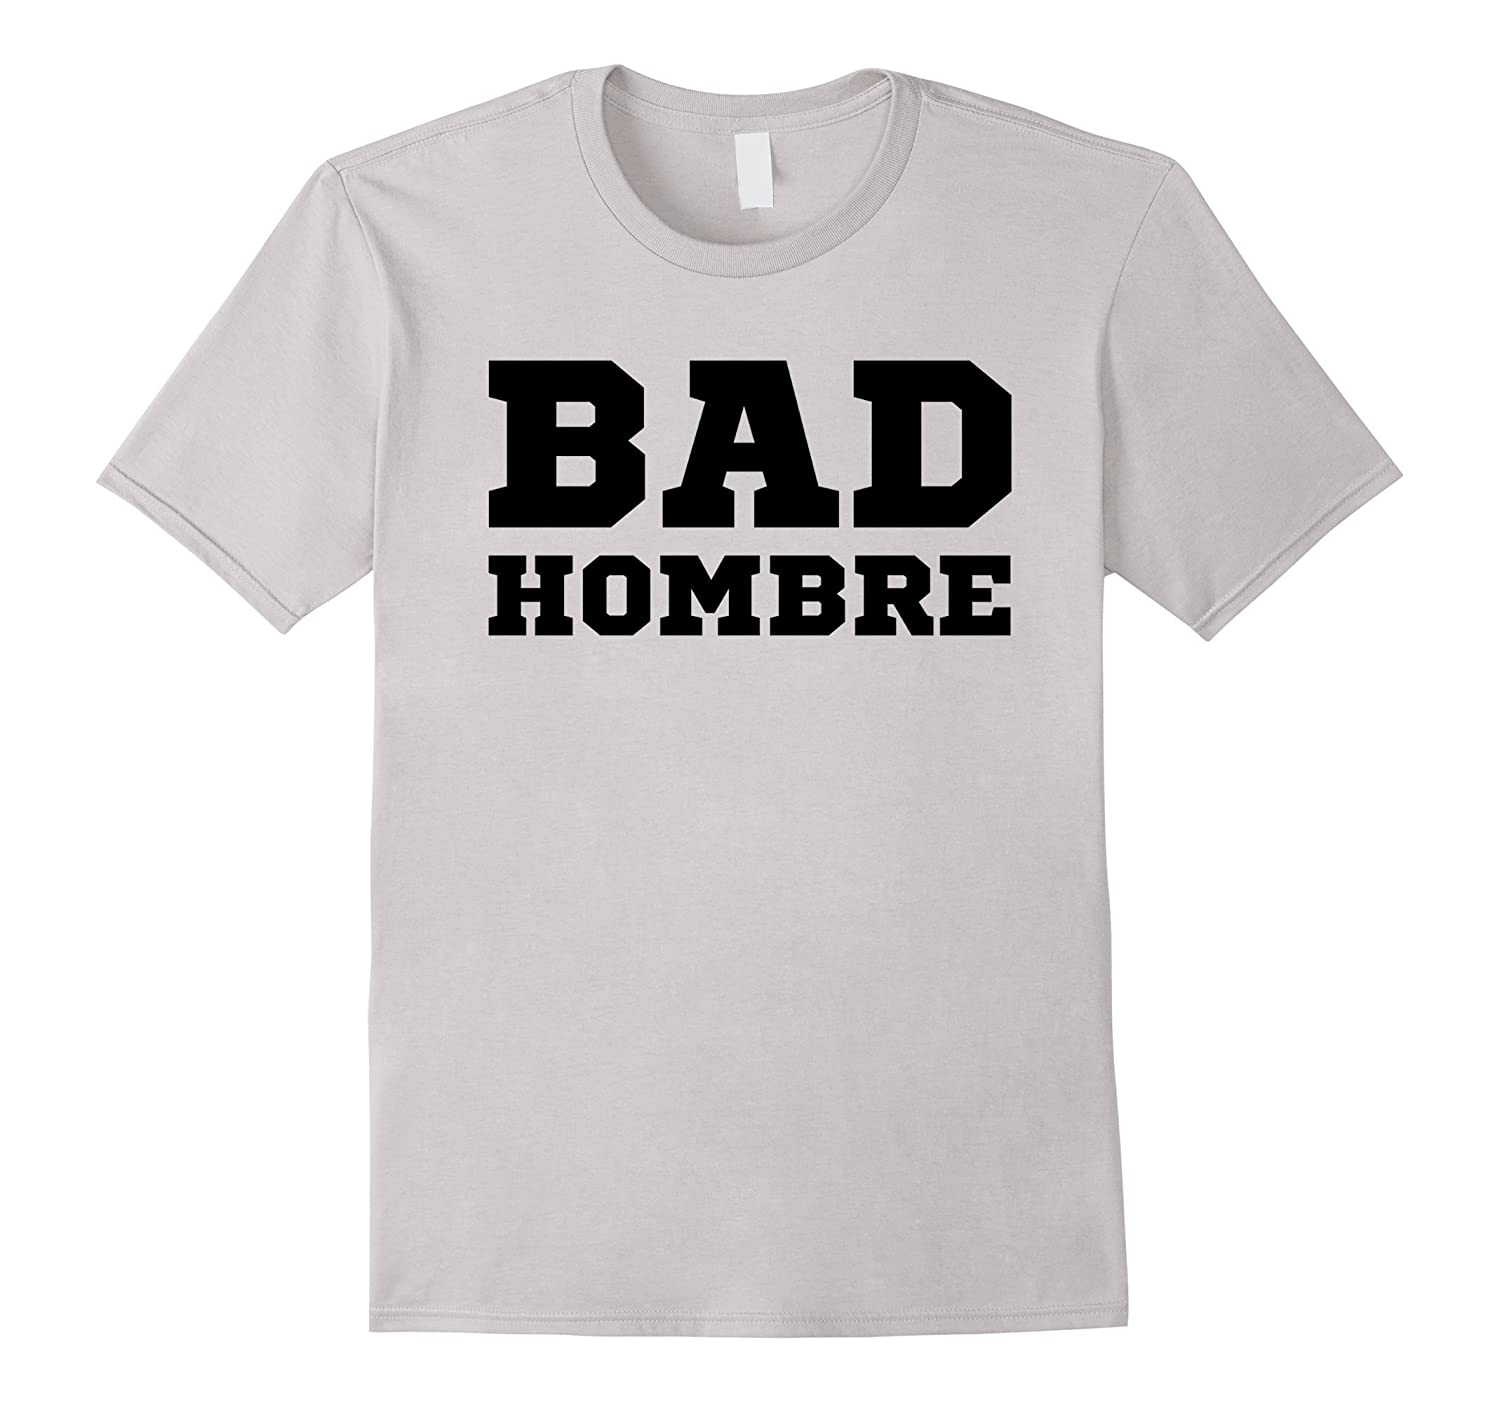 Bad Hombre T Shirt 2016 Election Debate-Art